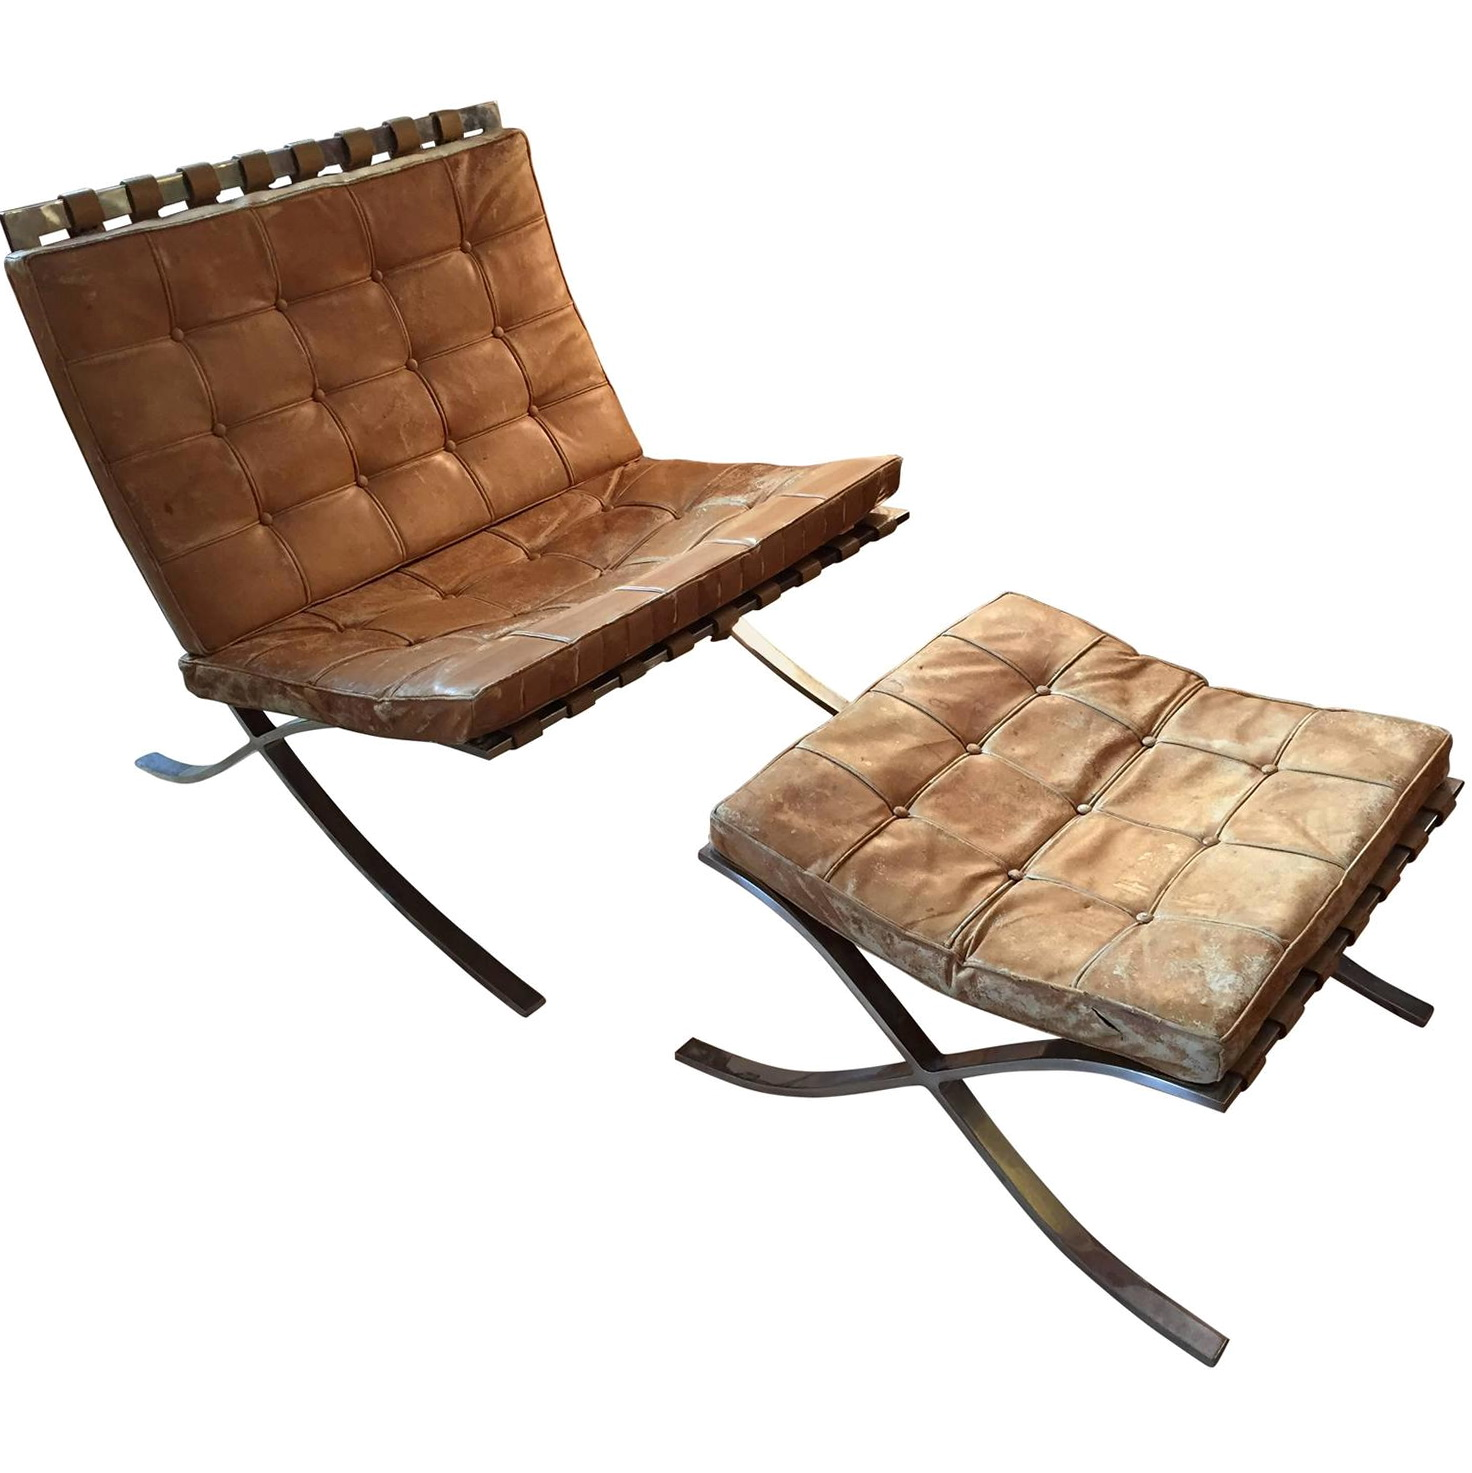 Barcelona Chair Cushions Replacement Home Design Ideas